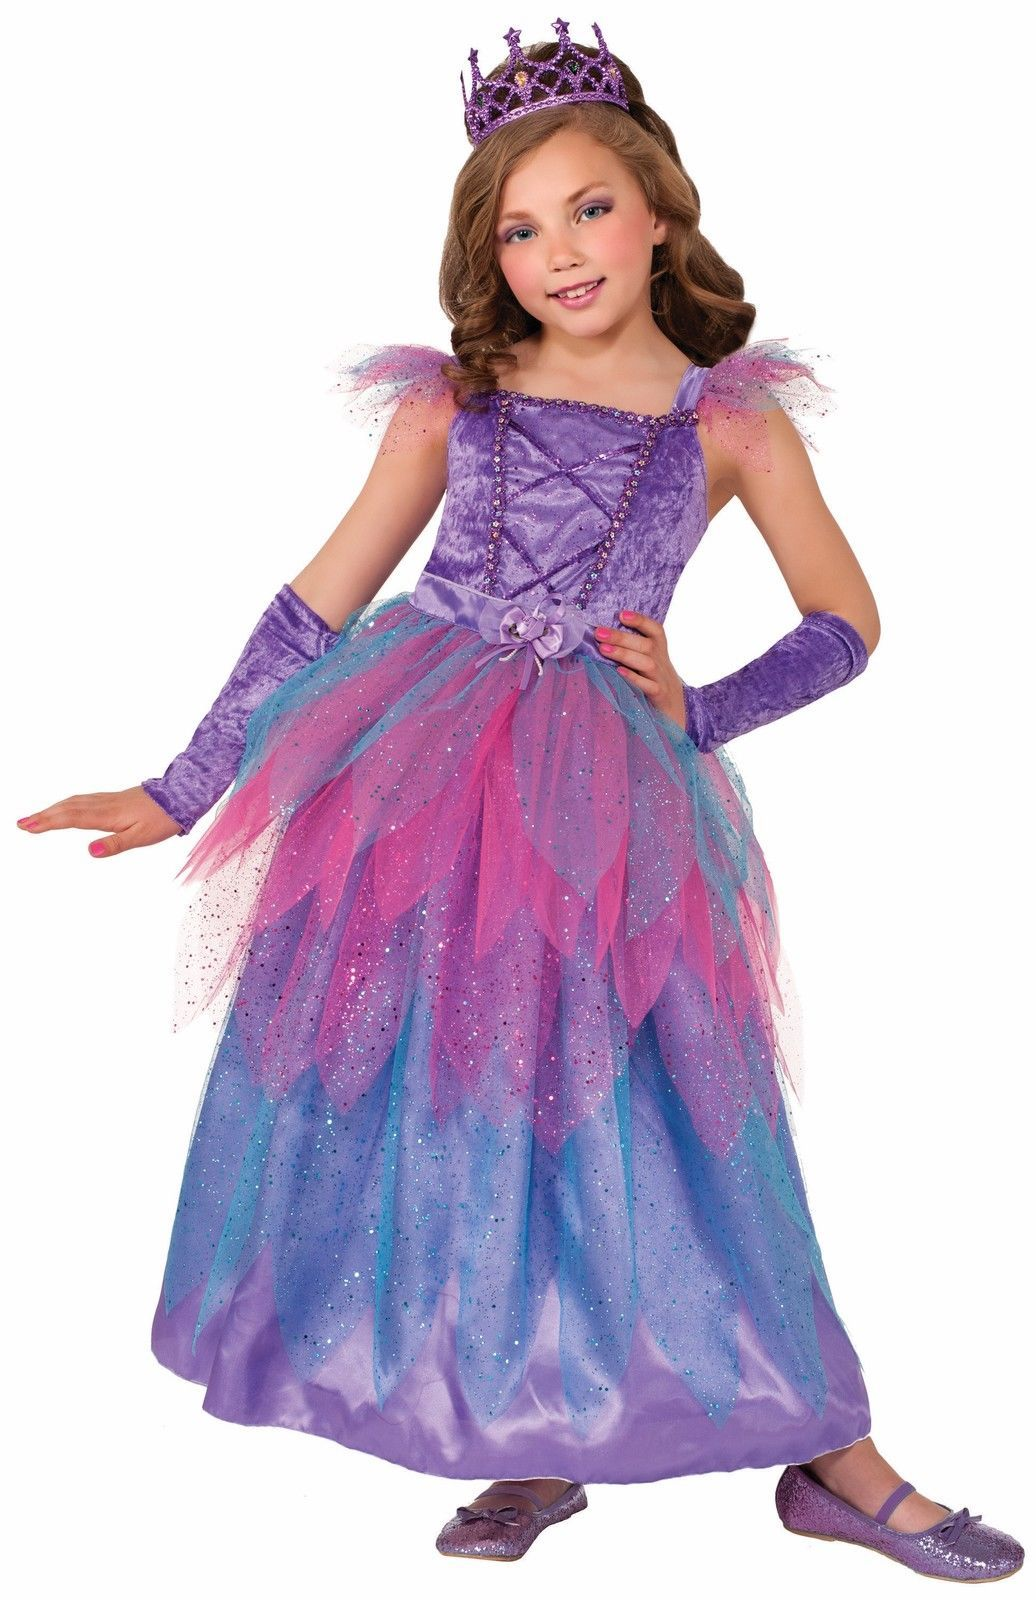 Image 1 of Happily Ever After Royal Purple Fairy Princess Girls Costume w/Glovettes, Forum